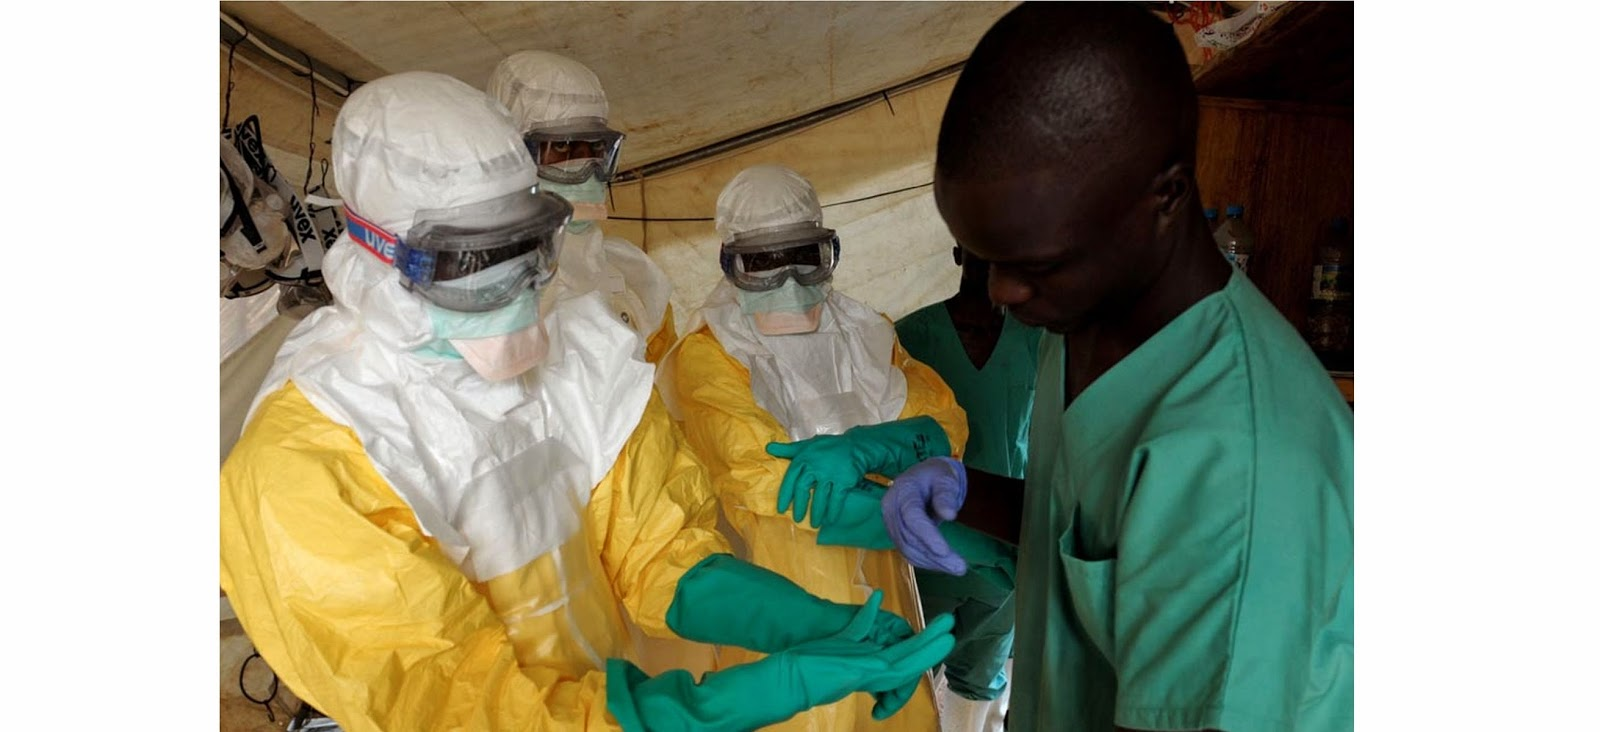 ebola virus and government quarantine procedures to prevent outbreaks The west african ebola virus epidemic (2013-2016) was the most widespread outbreak of ebola virus disease (evd) in history—causing major loss of life and socioeconomic disruption in the region.